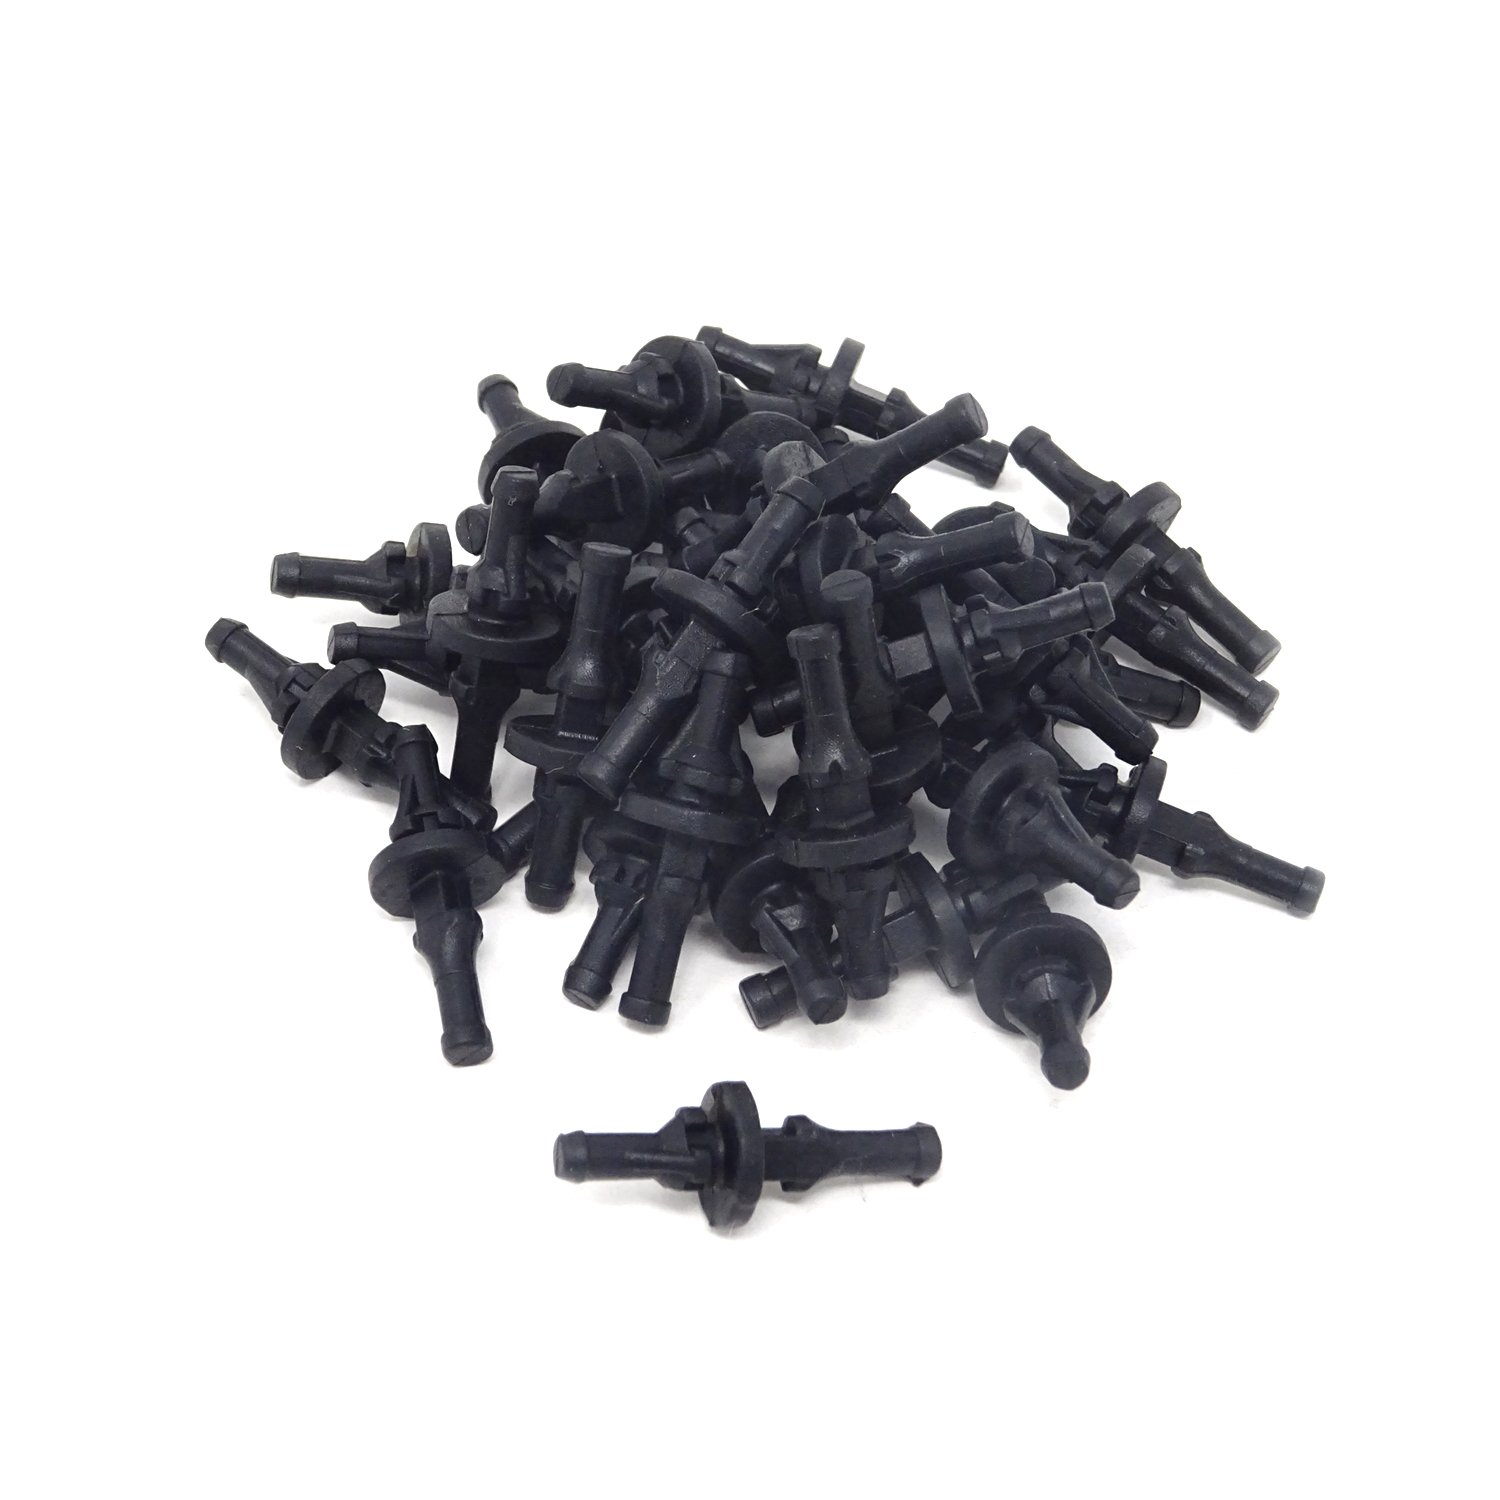 HONBAY 40PCS PC Case Fans Black Rubber Reducing Noise Anti-Vibration Screws Fan Rivet for PC Case Fan or CPU Fan